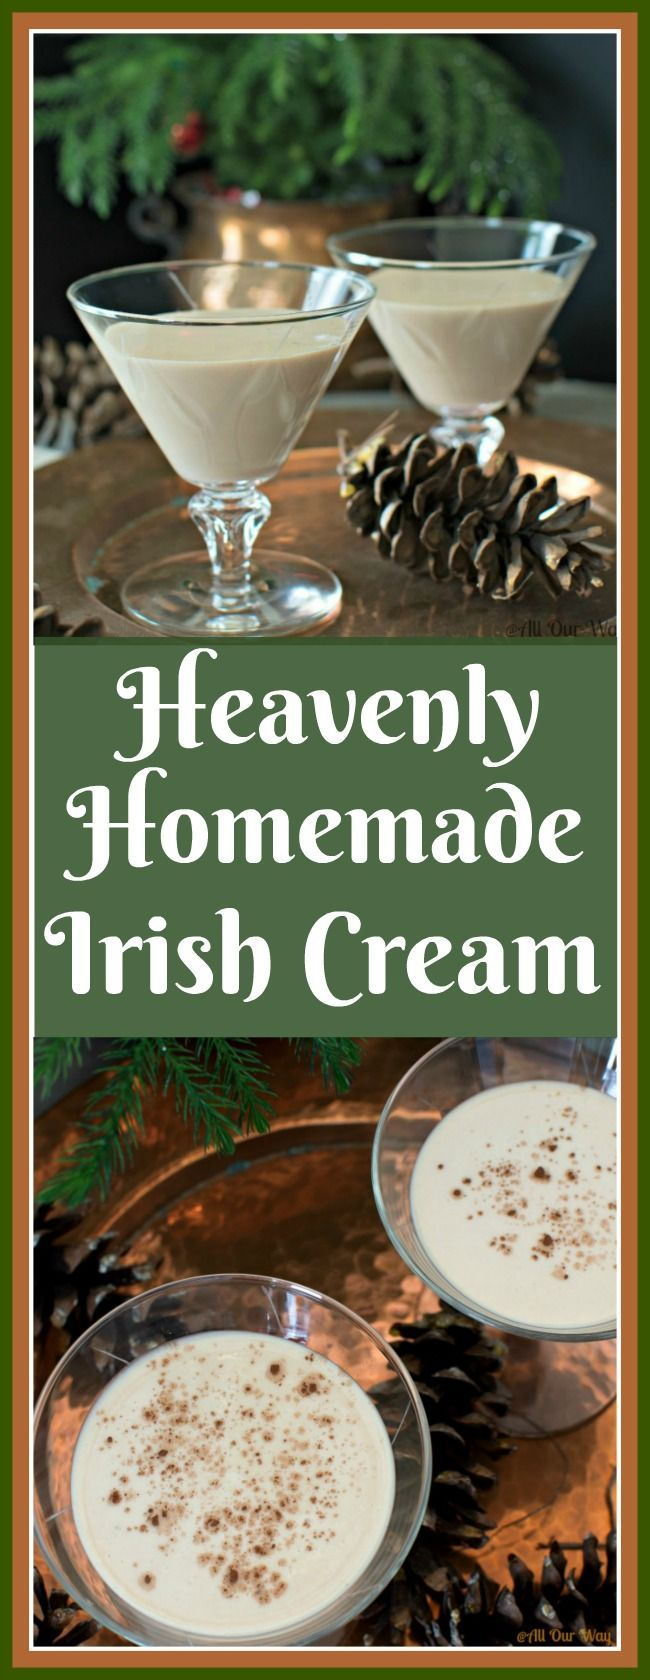 Heavenly Homemade Irish Cream Rich & Smooth